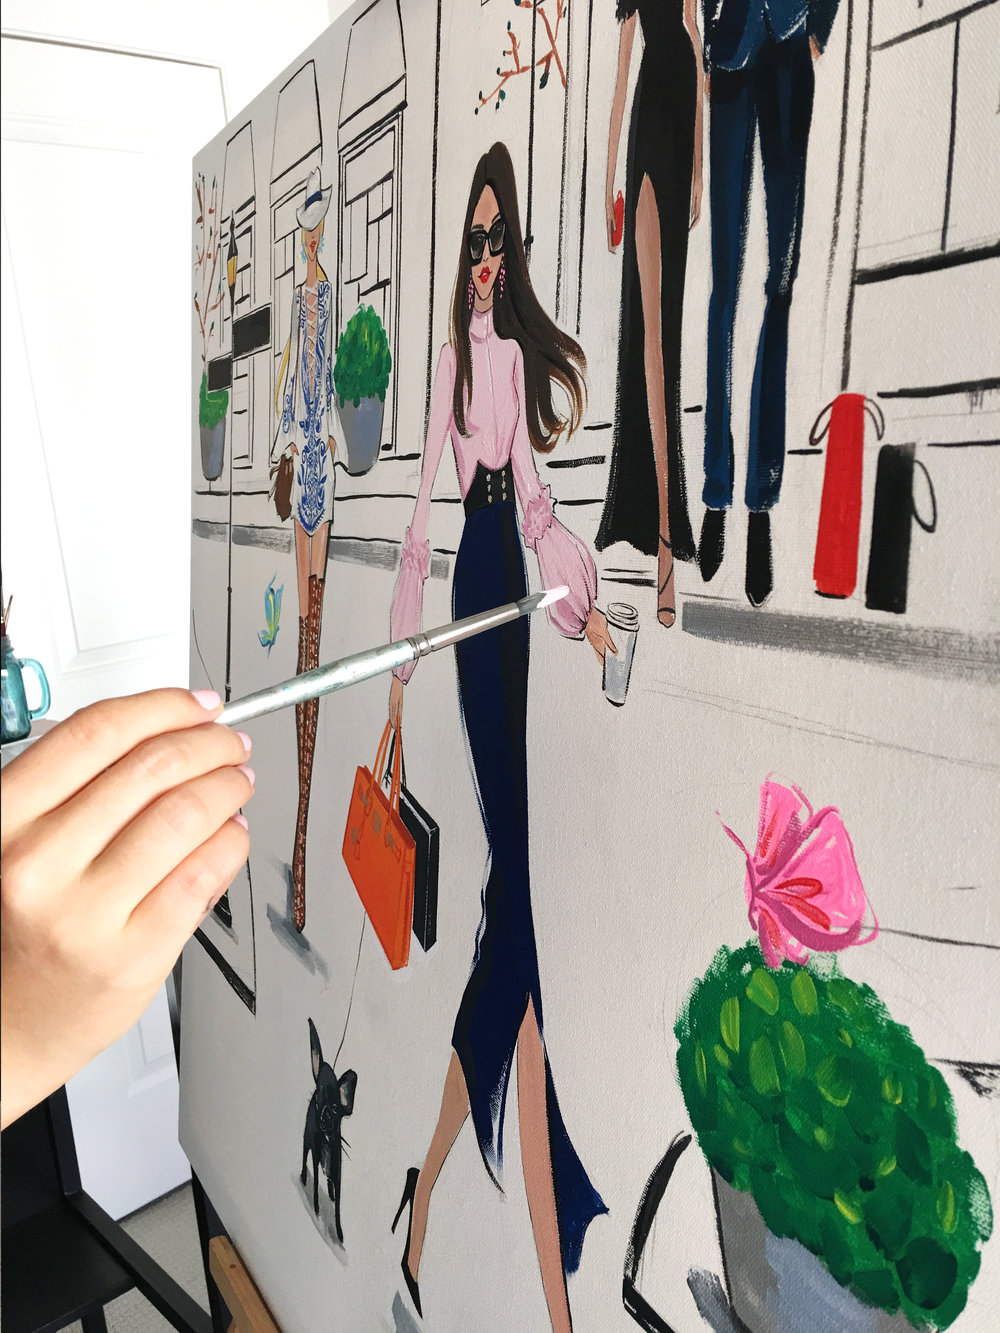 Details Fashion painting for River Oaks District by freelance fashion illustrator Rongrong DeVoe